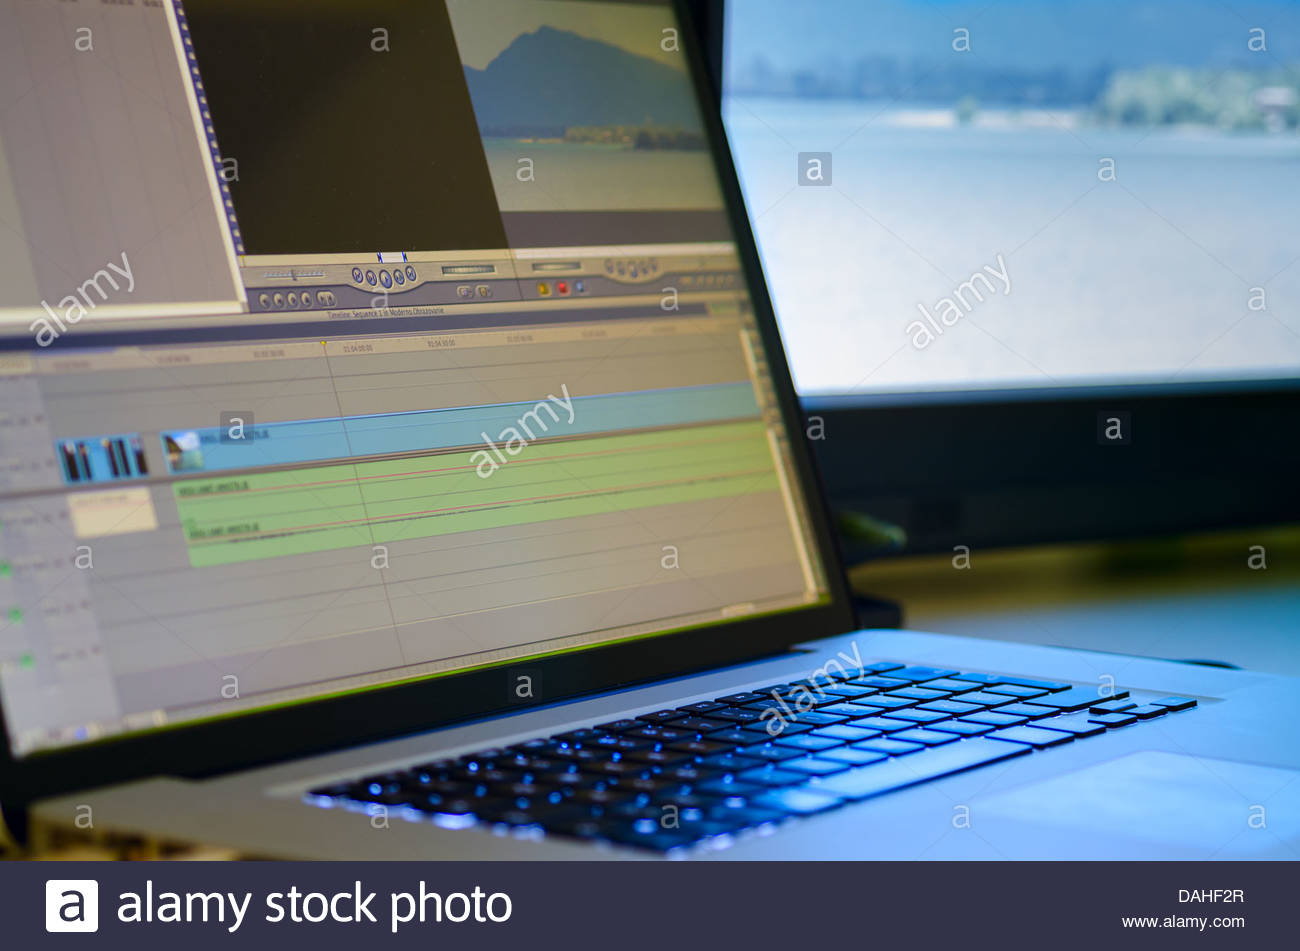 Non-Linear editing system with preview monitor - Stock Image